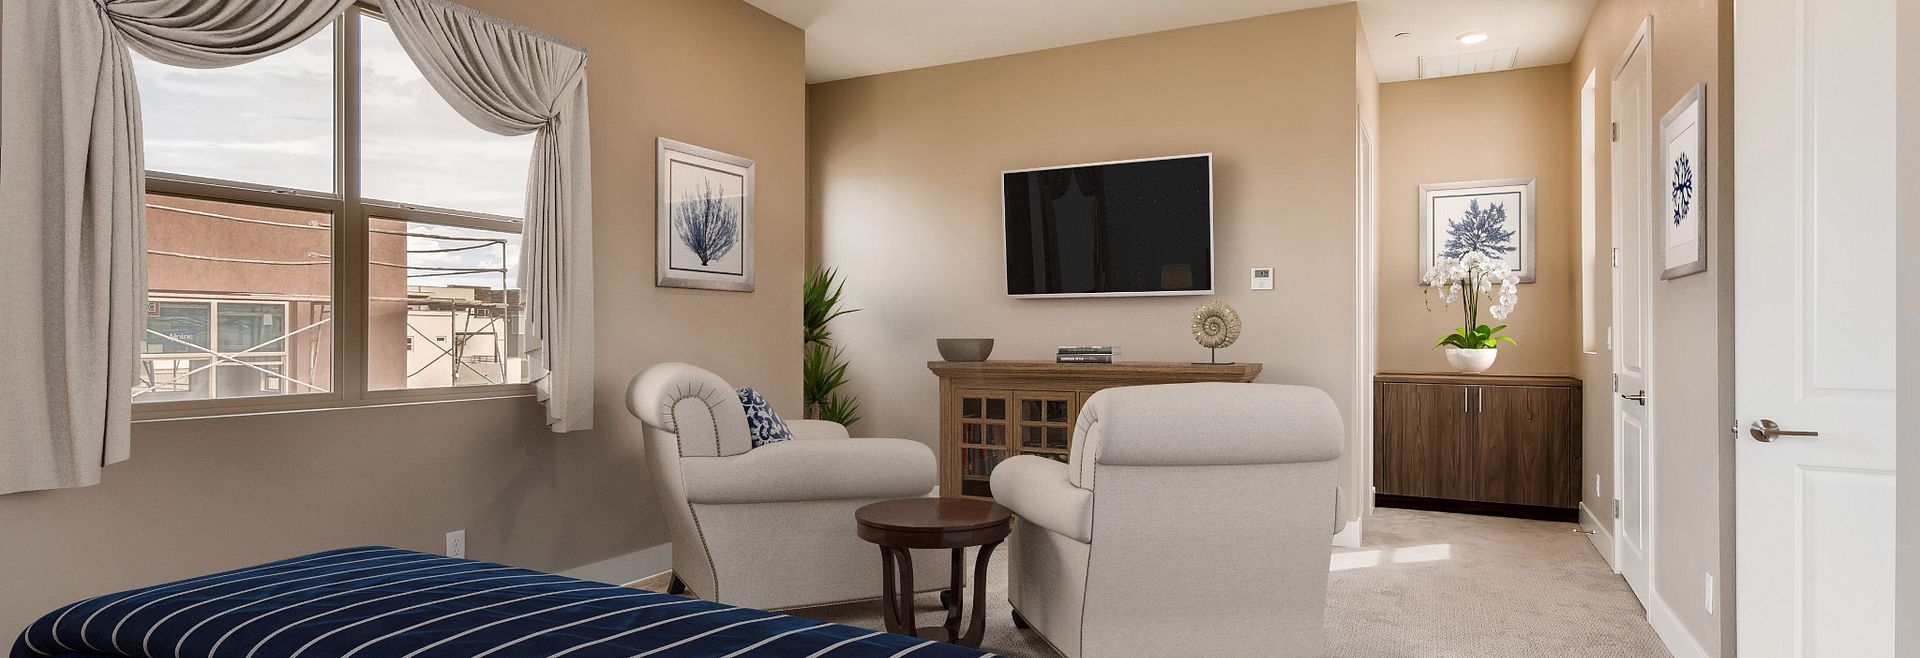 Trilogy Summerlin Splendor Virtually Staged Guest Suite